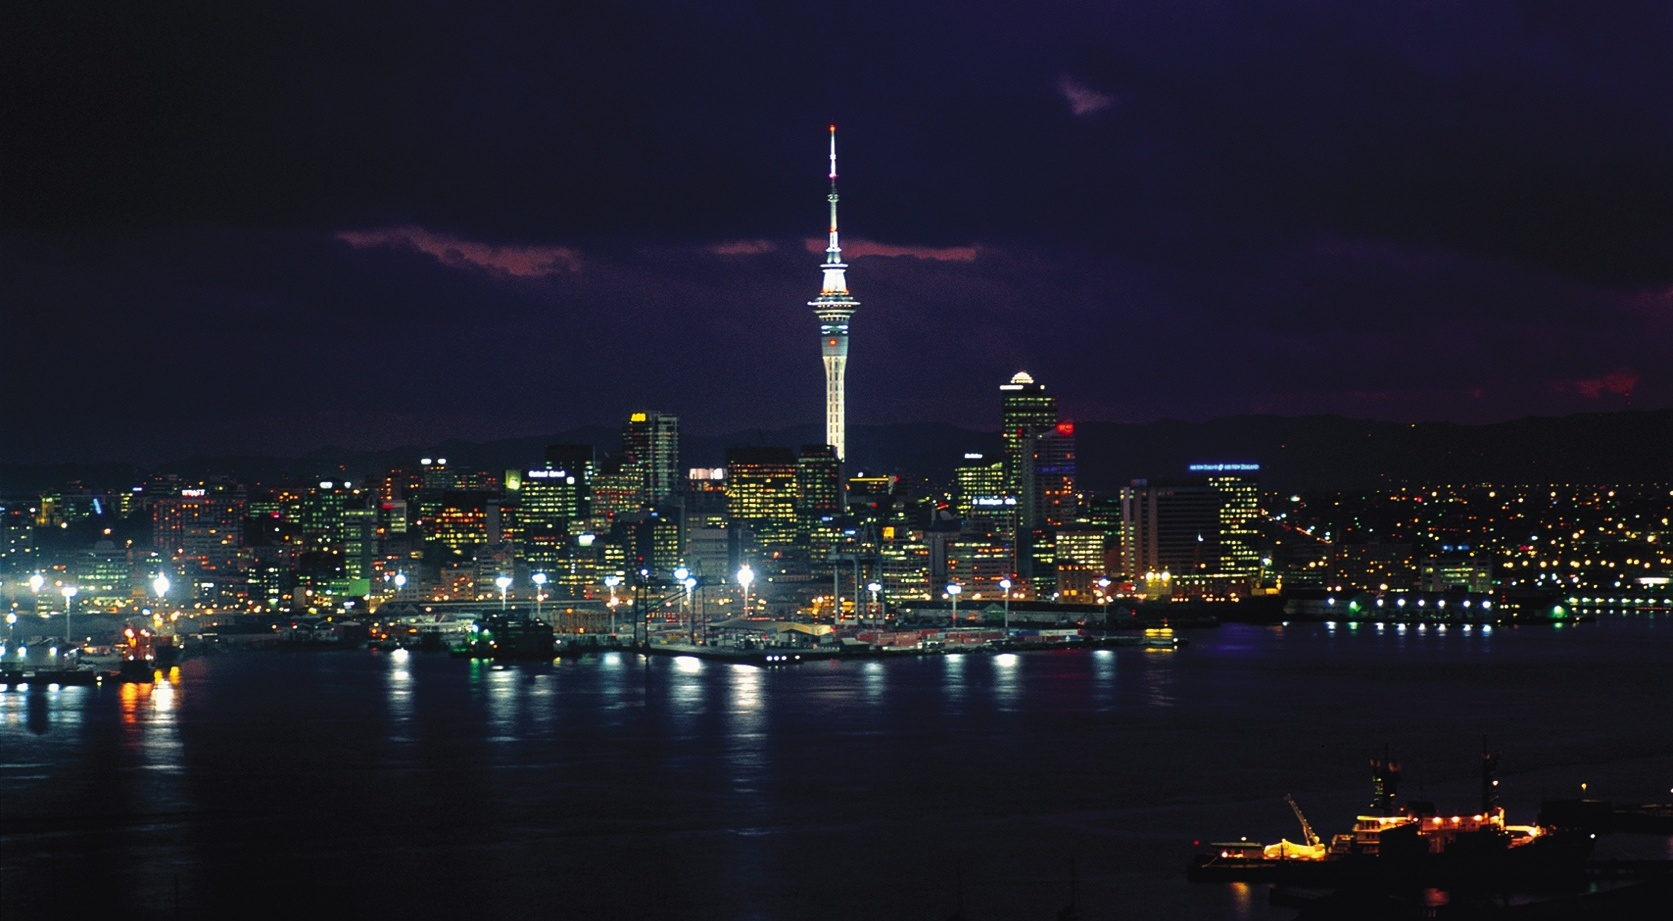 skycity auckland at night